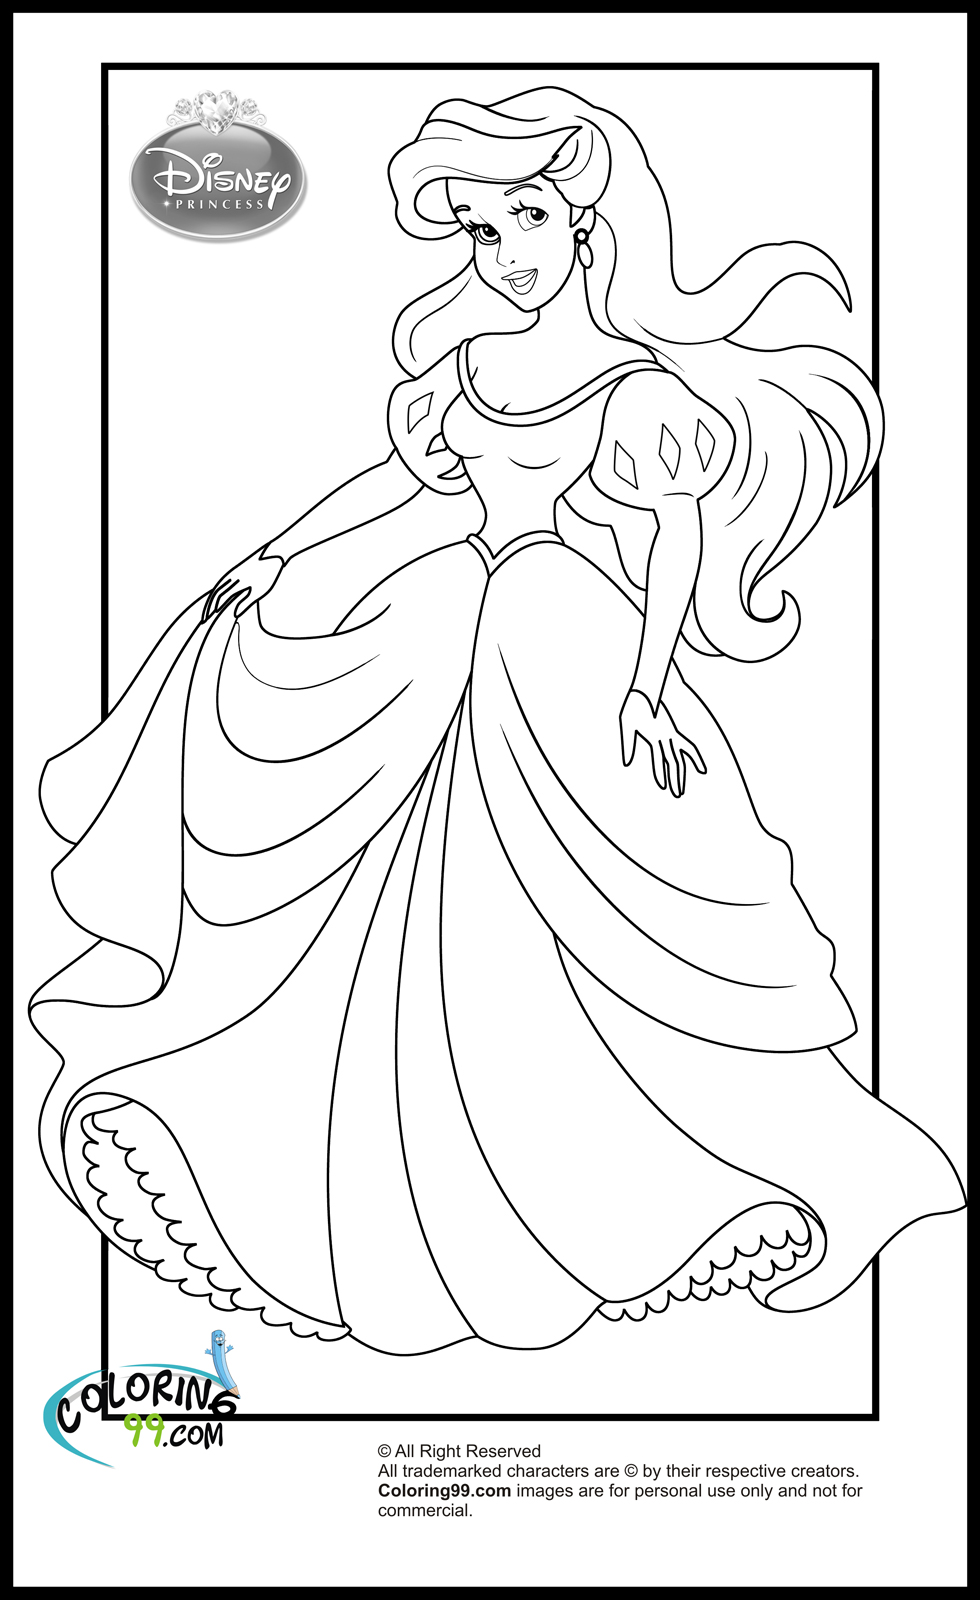 Disney Princess Coloring Pages Minister Coloring Princess Picture To Color Free Coloring Sheets